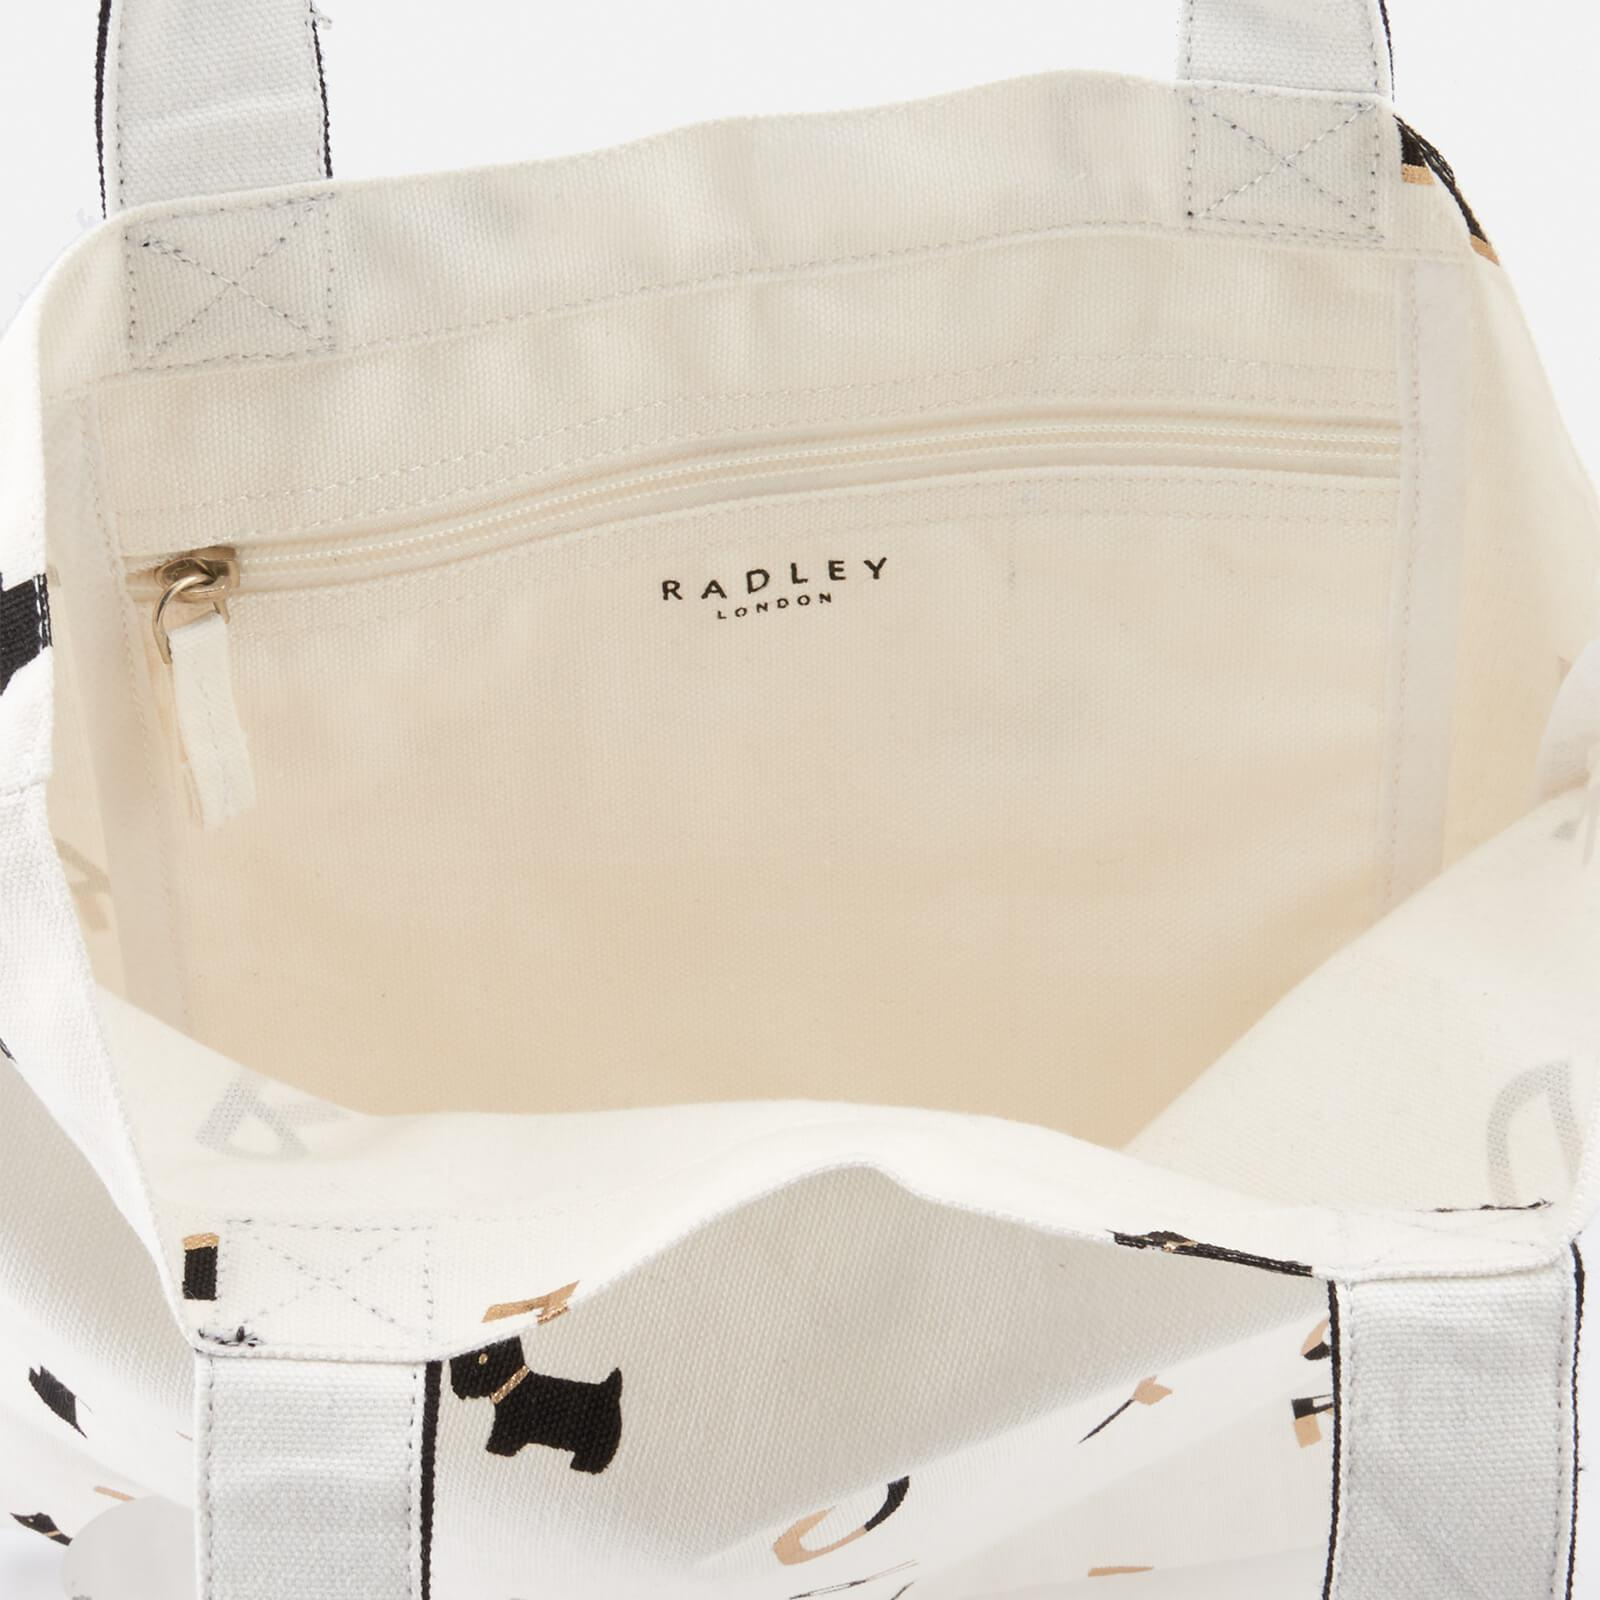 Radley Canvas All That Glitters Medium Tote Bag in White